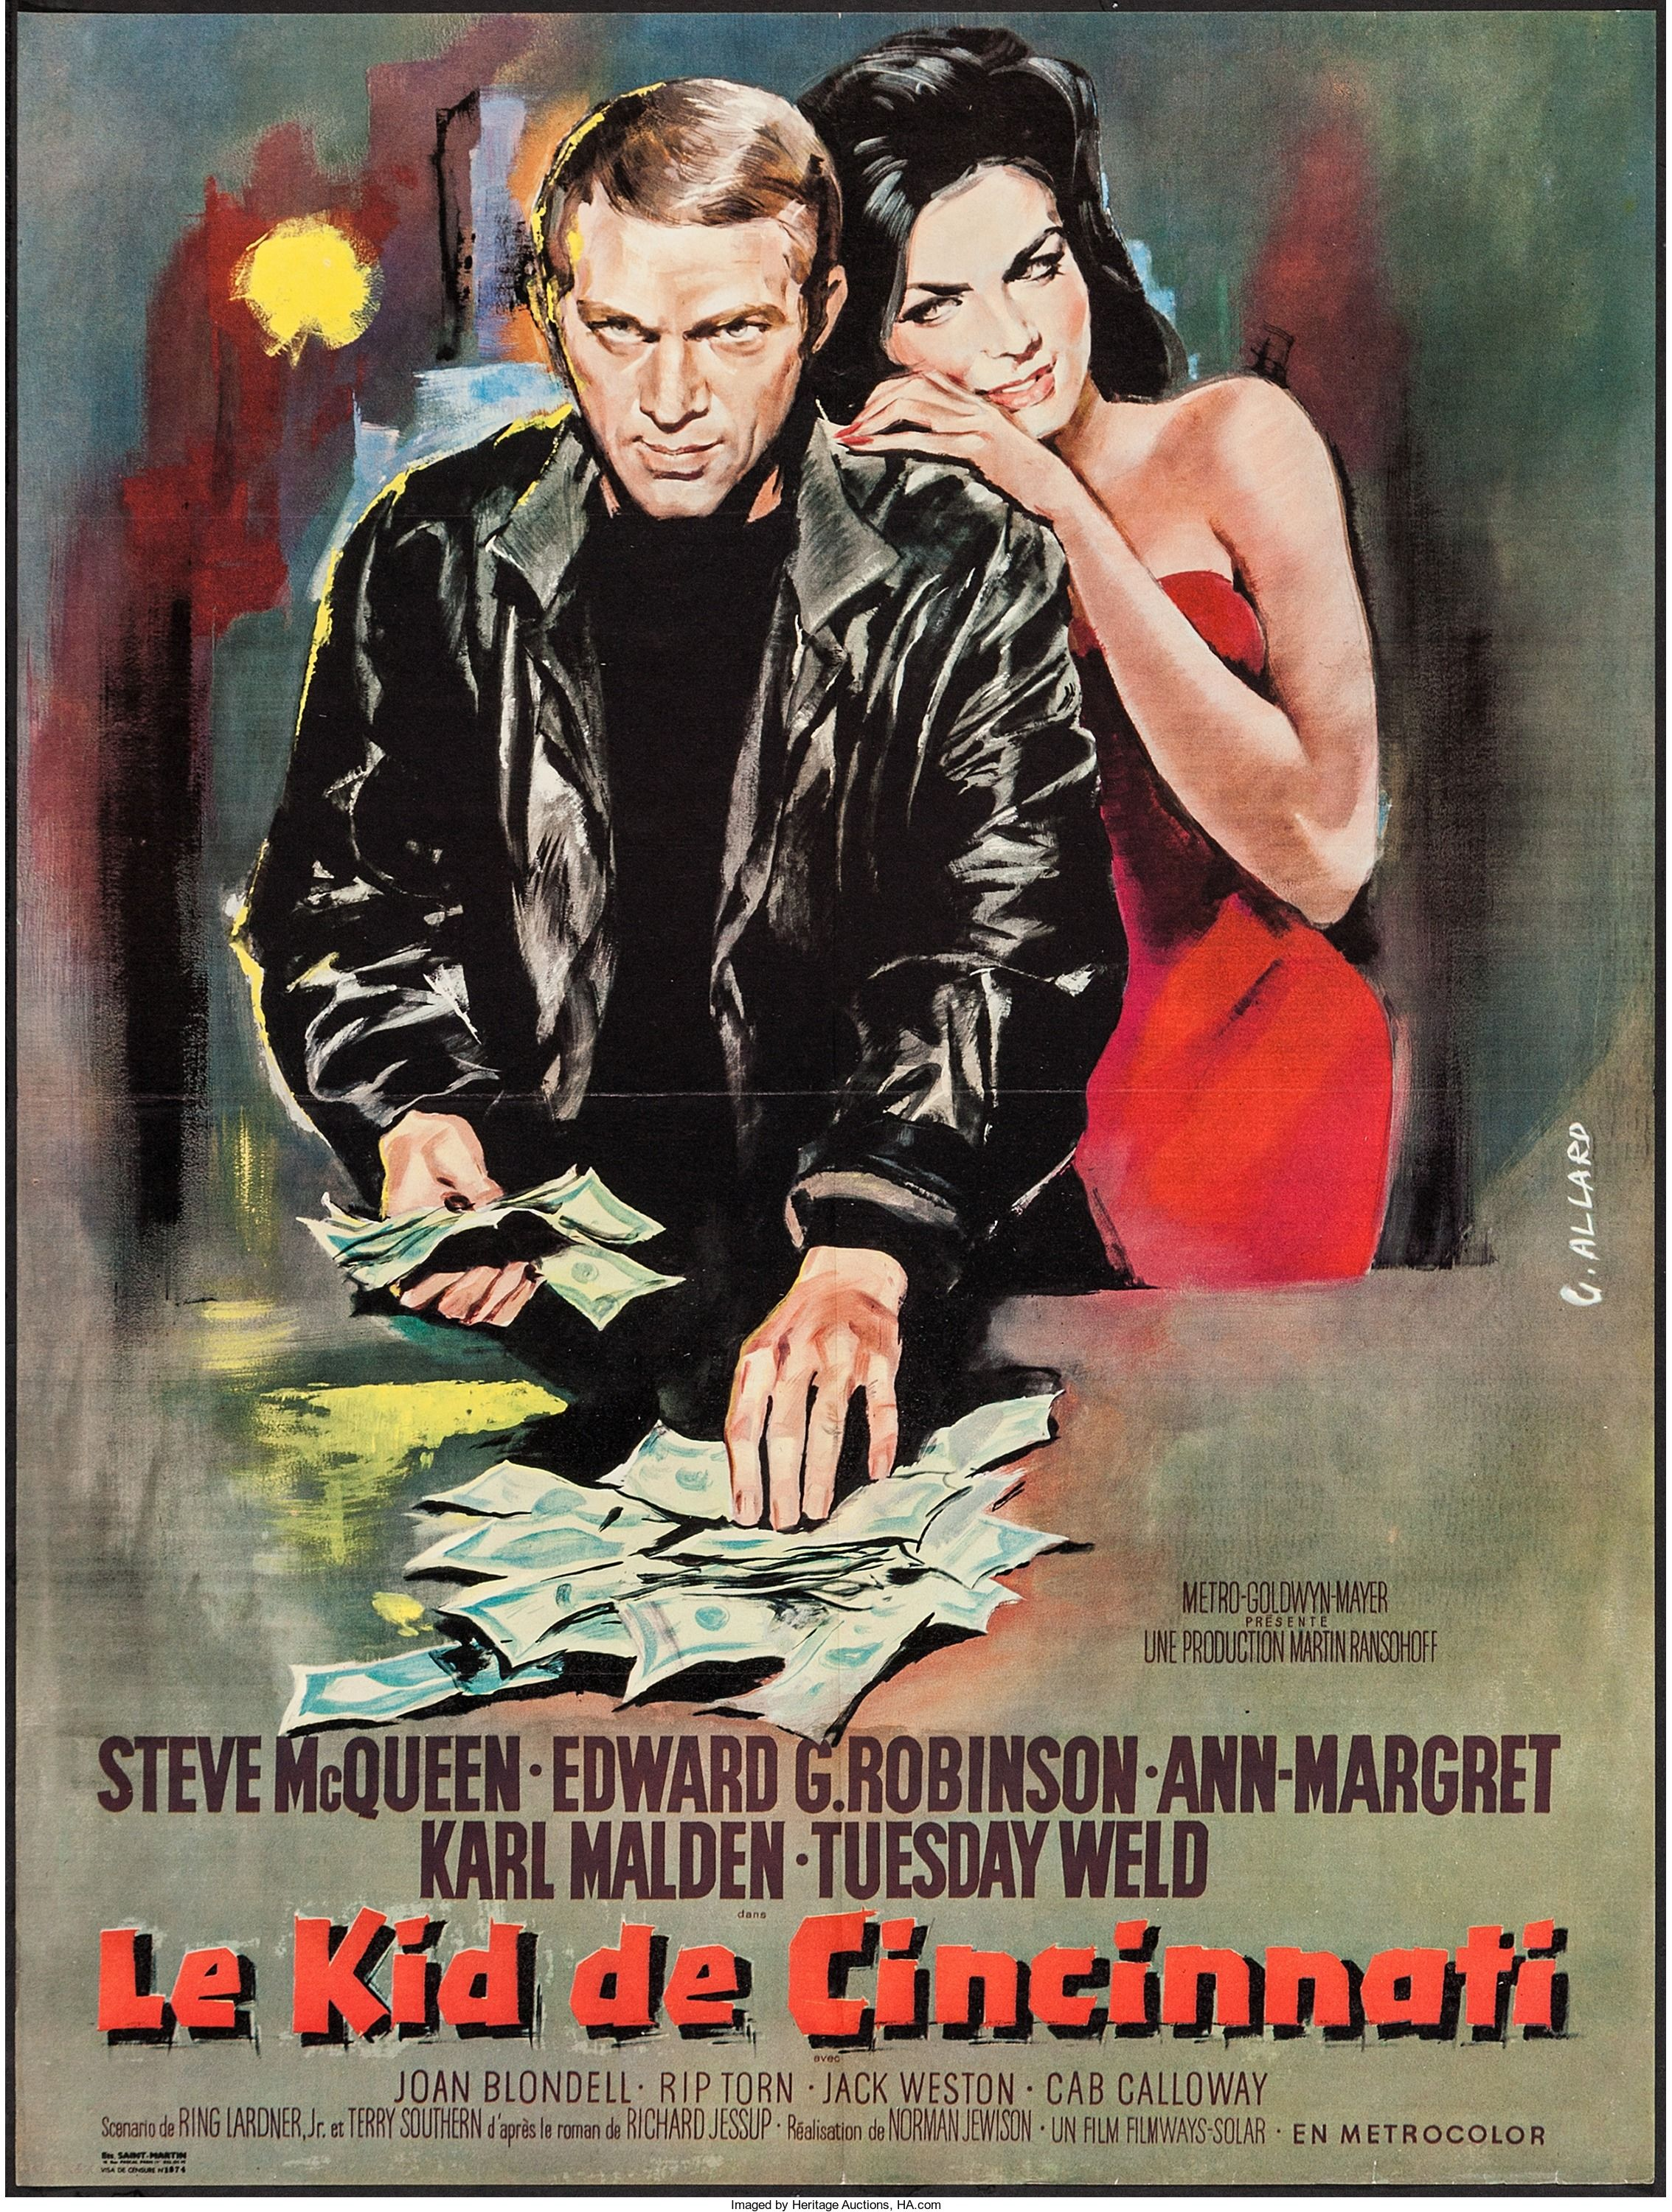 Home gt steve mcqueen porsche paintings - The Cincinnati Kid Mgm French Grande X Steve Mcqueen Is The Cool And Suave Available At 2015 November 21 22 Vintage